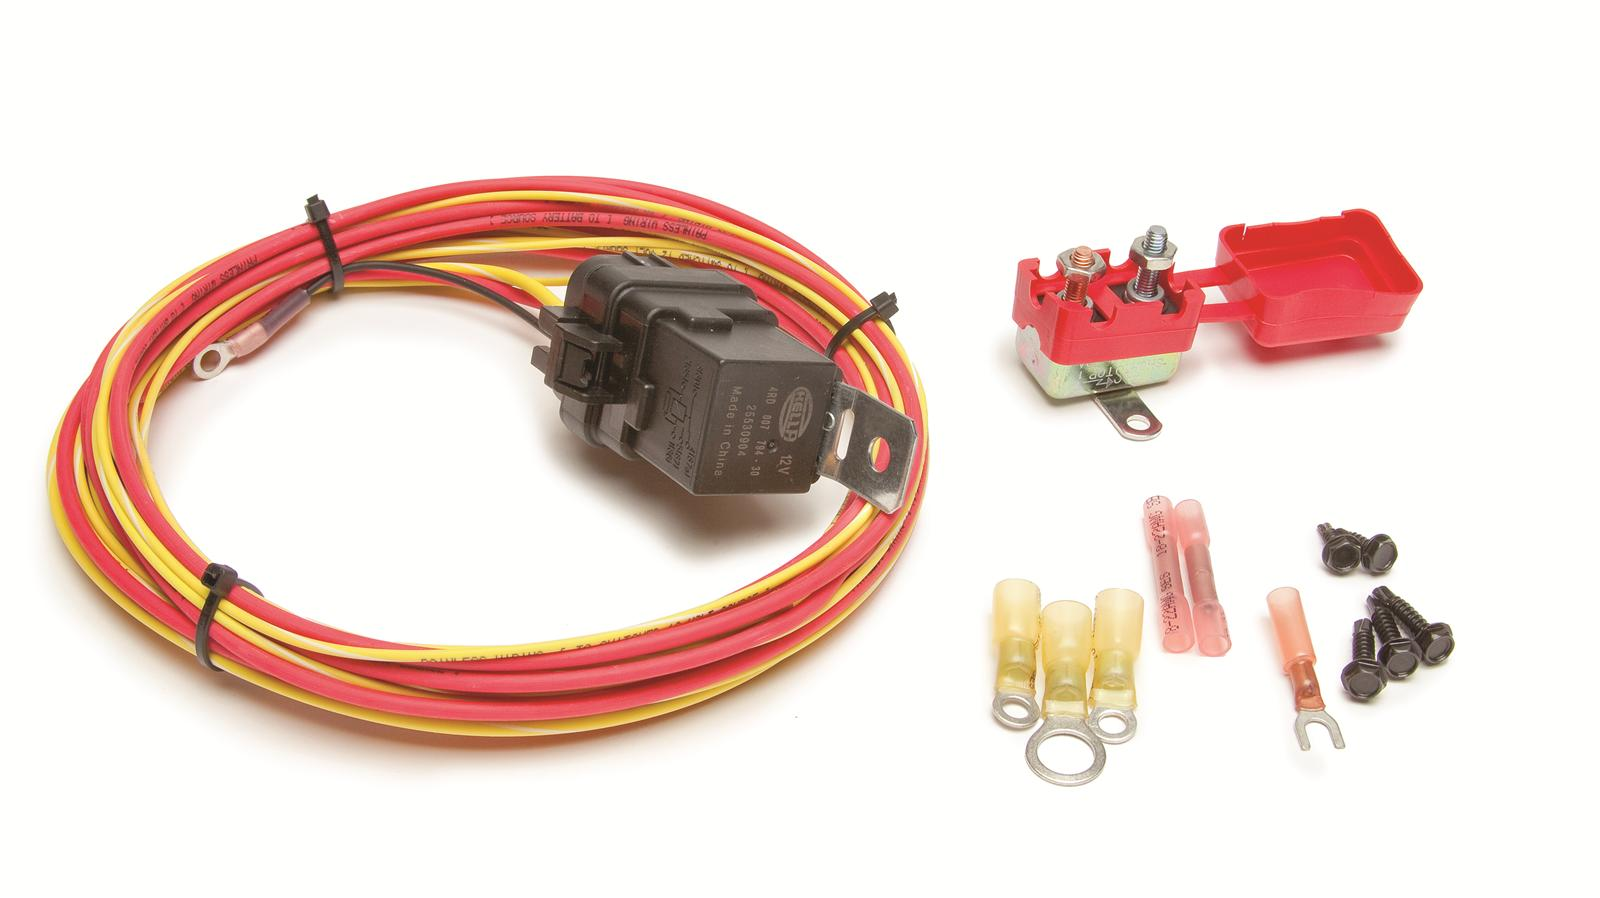 Superb Painless Performance Universal Fuel Pump Relay Kits 30131 Free Wiring 101 Akebretraxxcnl